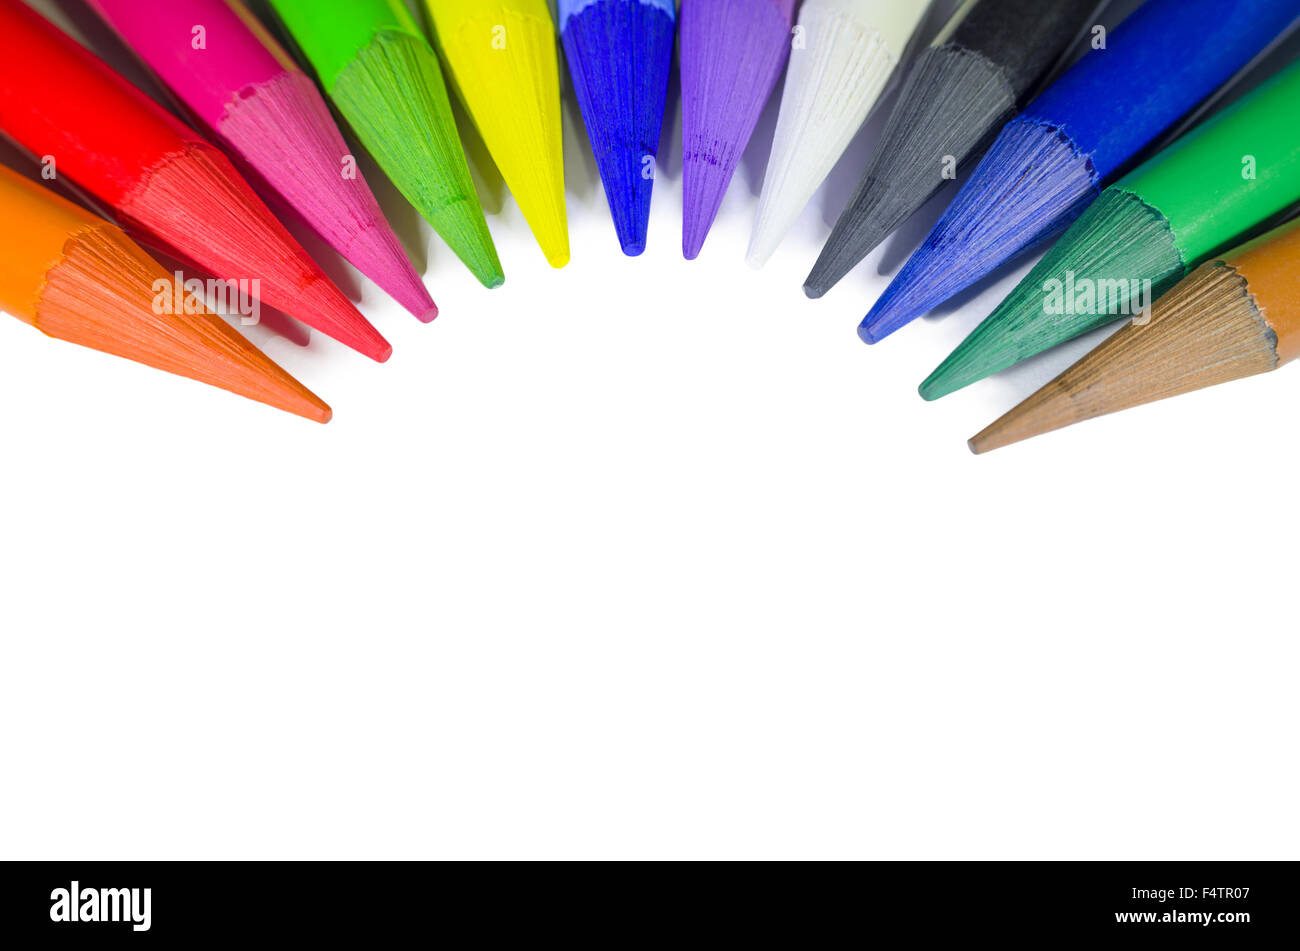 Woodless Colored Pencil Heads in Semicircle Macro Closeup Isolated on White Background - Stock Image